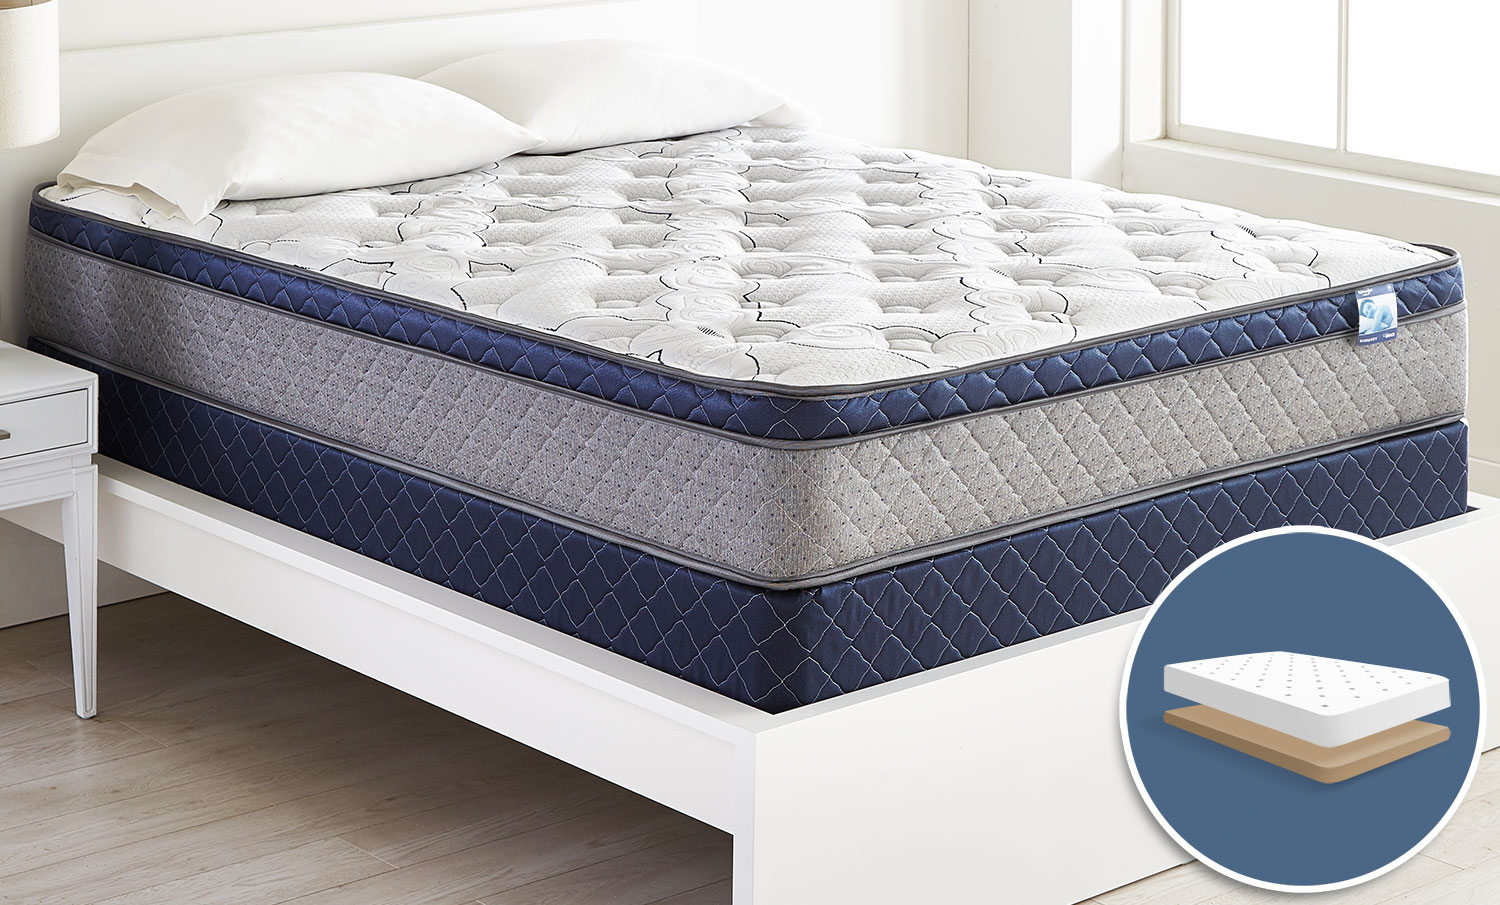 Springwall Burberry Euro-Top Firm Queen Mattress and Low-Profile Boxspring Set